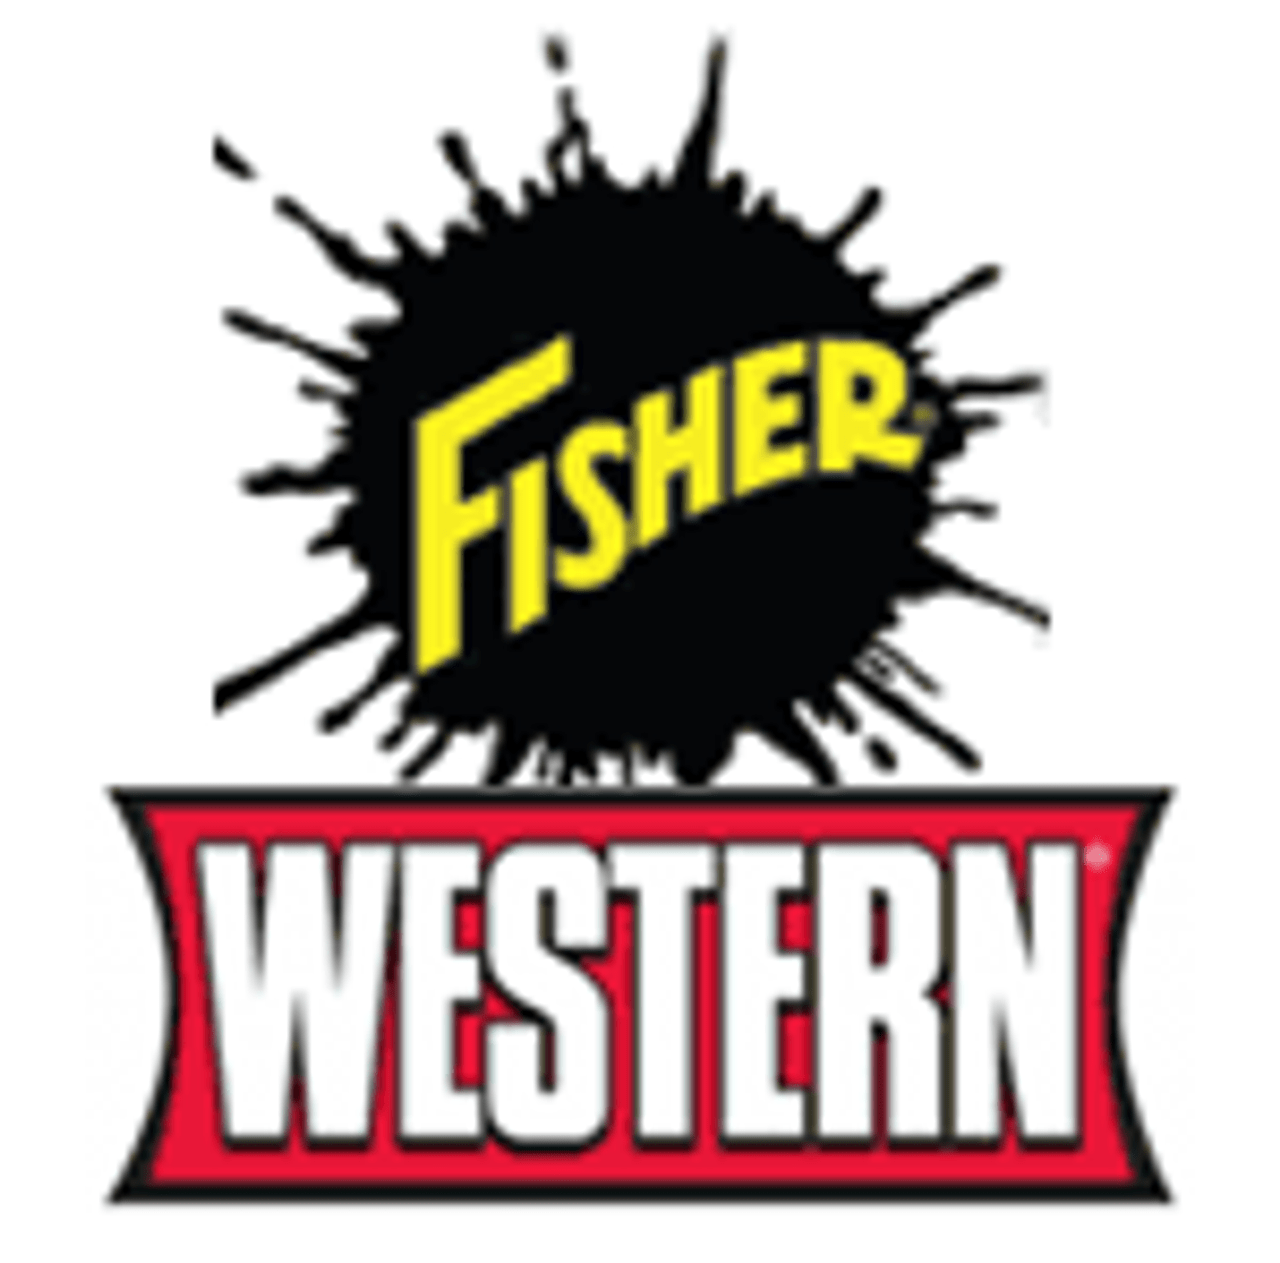 """56830 - """"FISHER - WESTERN - BLIZZARD HOSE 1/4 X 22 W/FJIC ENDS (56598)"""